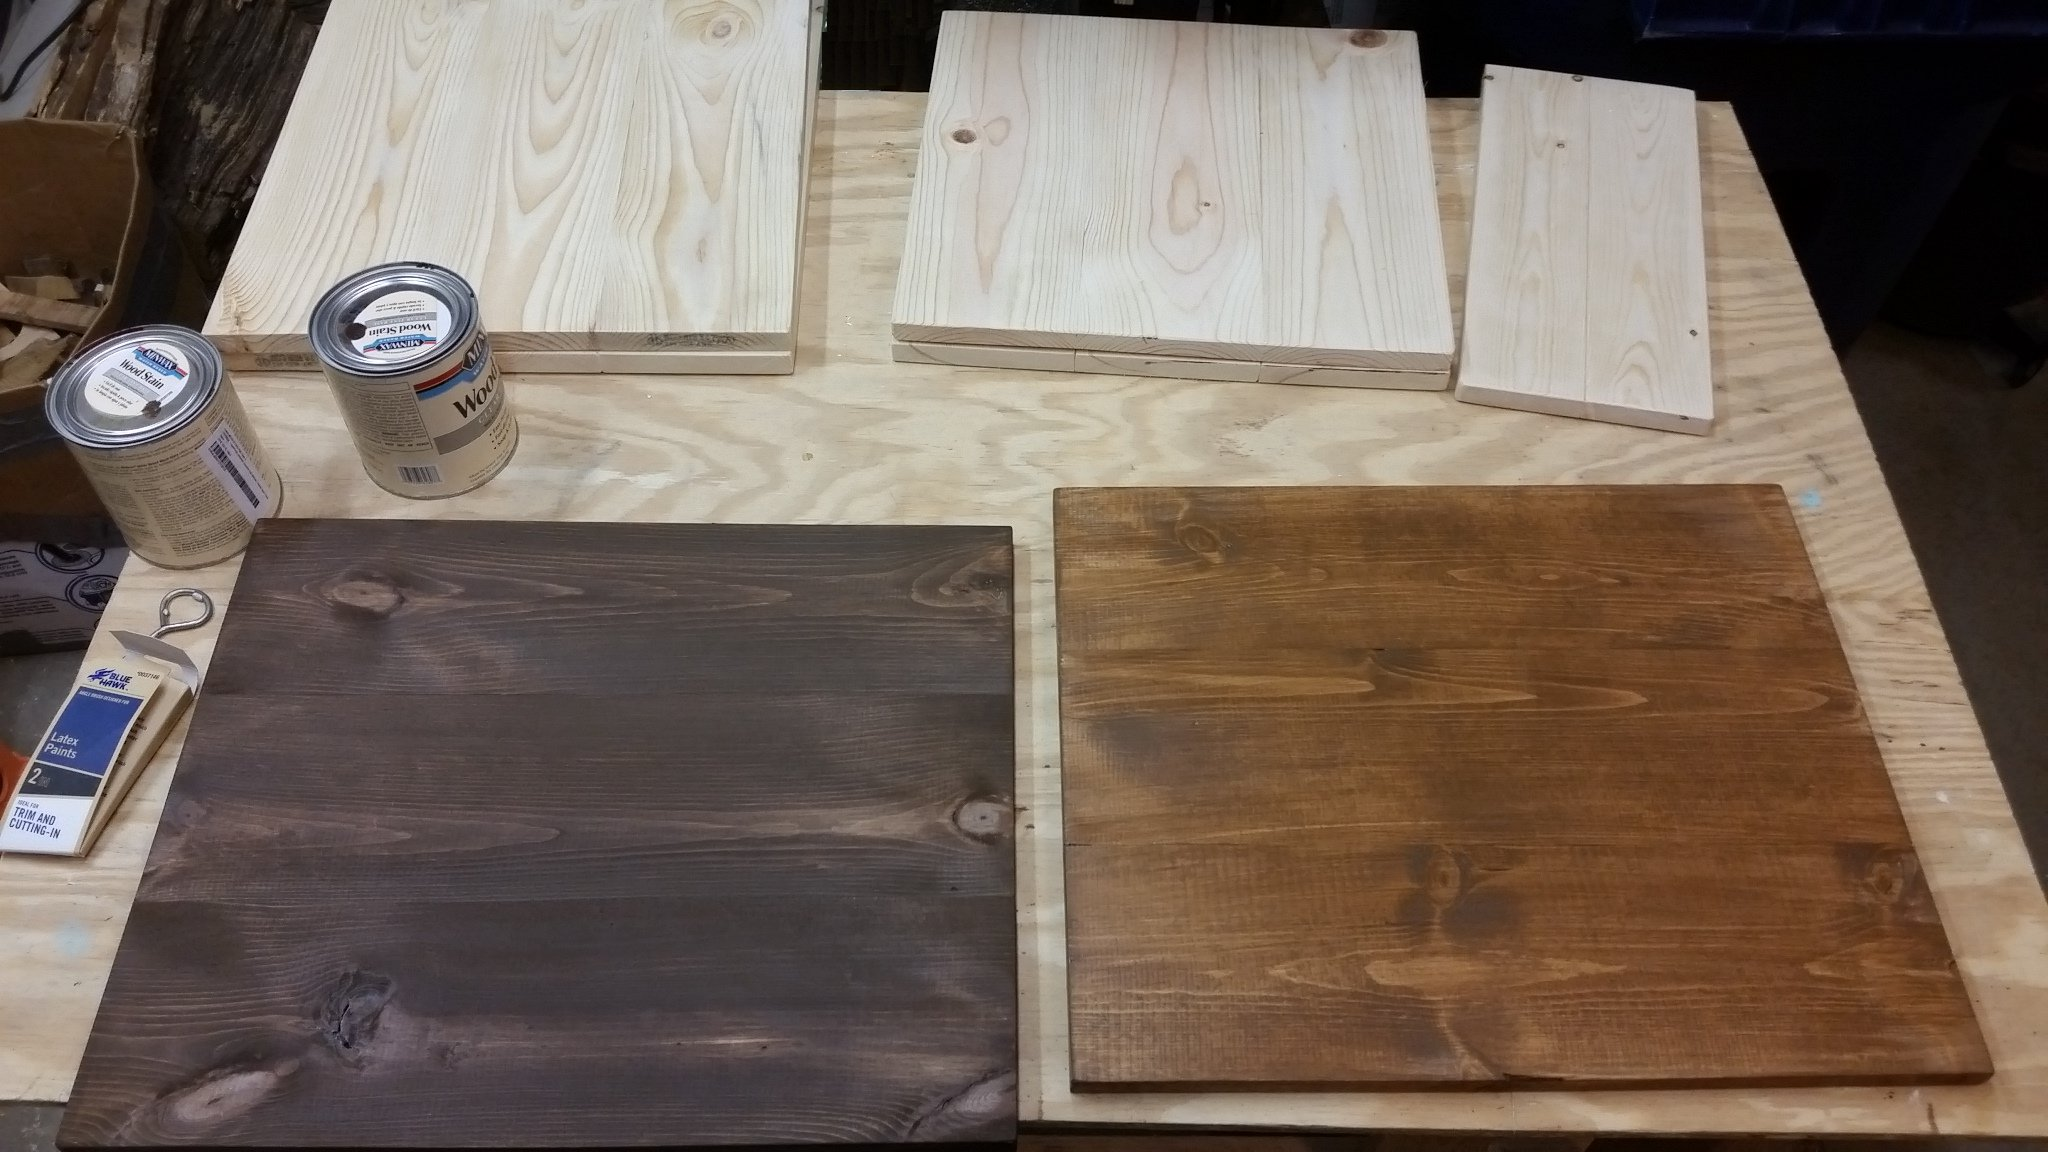 joebcrafts wooden sign blanks stained pine wood